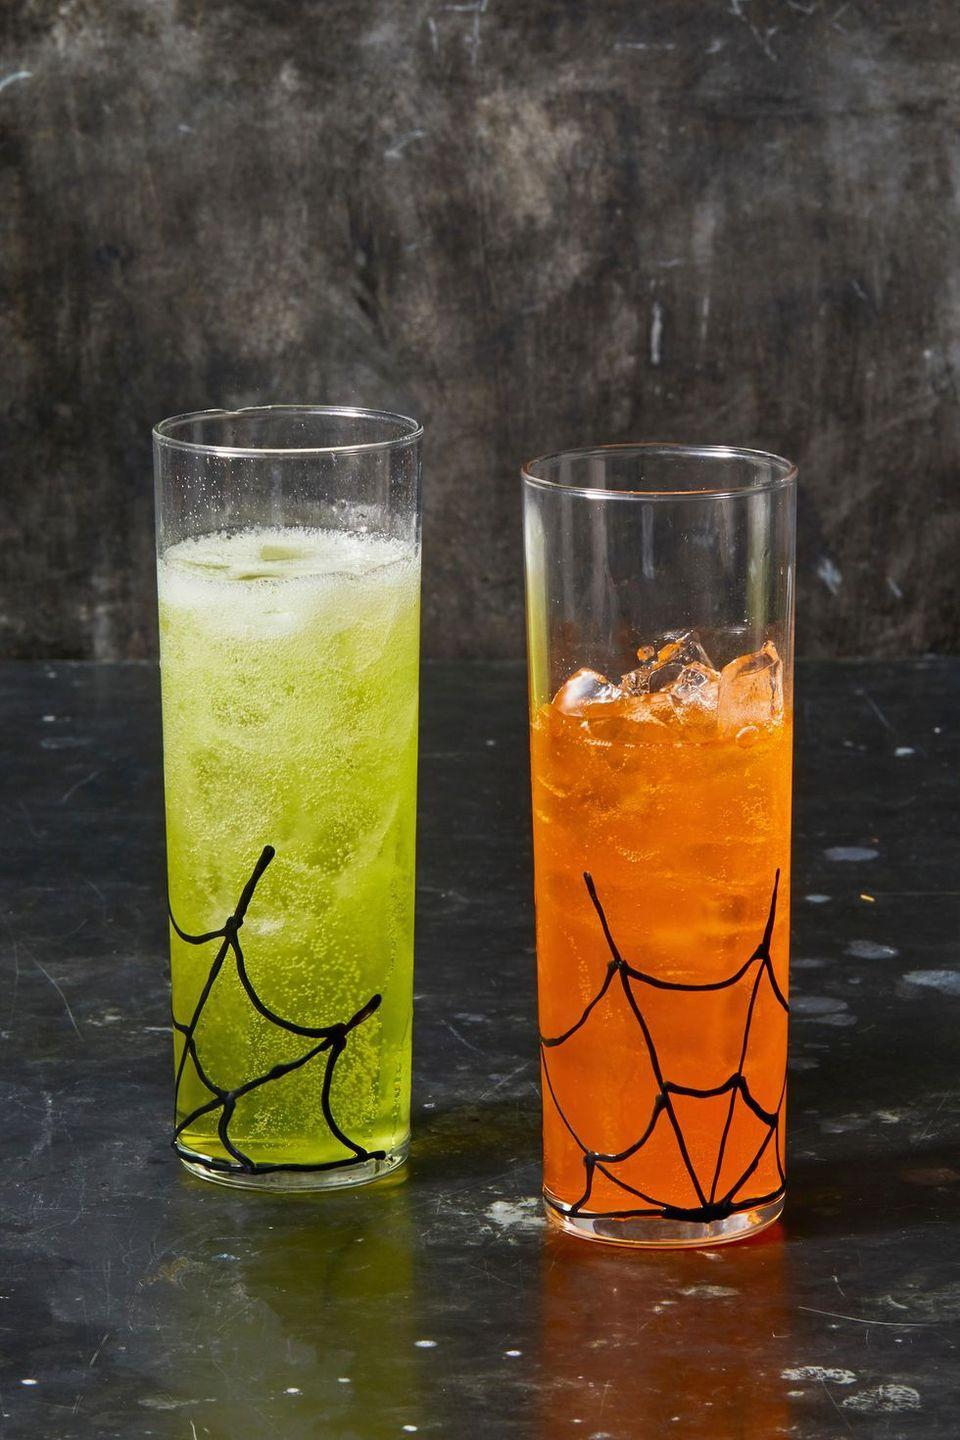 """<p>Give plastic or glass tumblers a Halloween makeover by drawing spider web patterns with puff paint. Serve neon-colored, <a href=""""https://www.goodhousekeeping.com/holidays/halloween-ideas/g3718/best-halloween-cocktails/"""" rel=""""nofollow noopener"""" target=""""_blank"""" data-ylk=""""slk:Halloween drinks"""" class=""""link rapid-noclick-resp"""">Halloween drinks</a>, like orange soda, for a pop of color.</p>"""